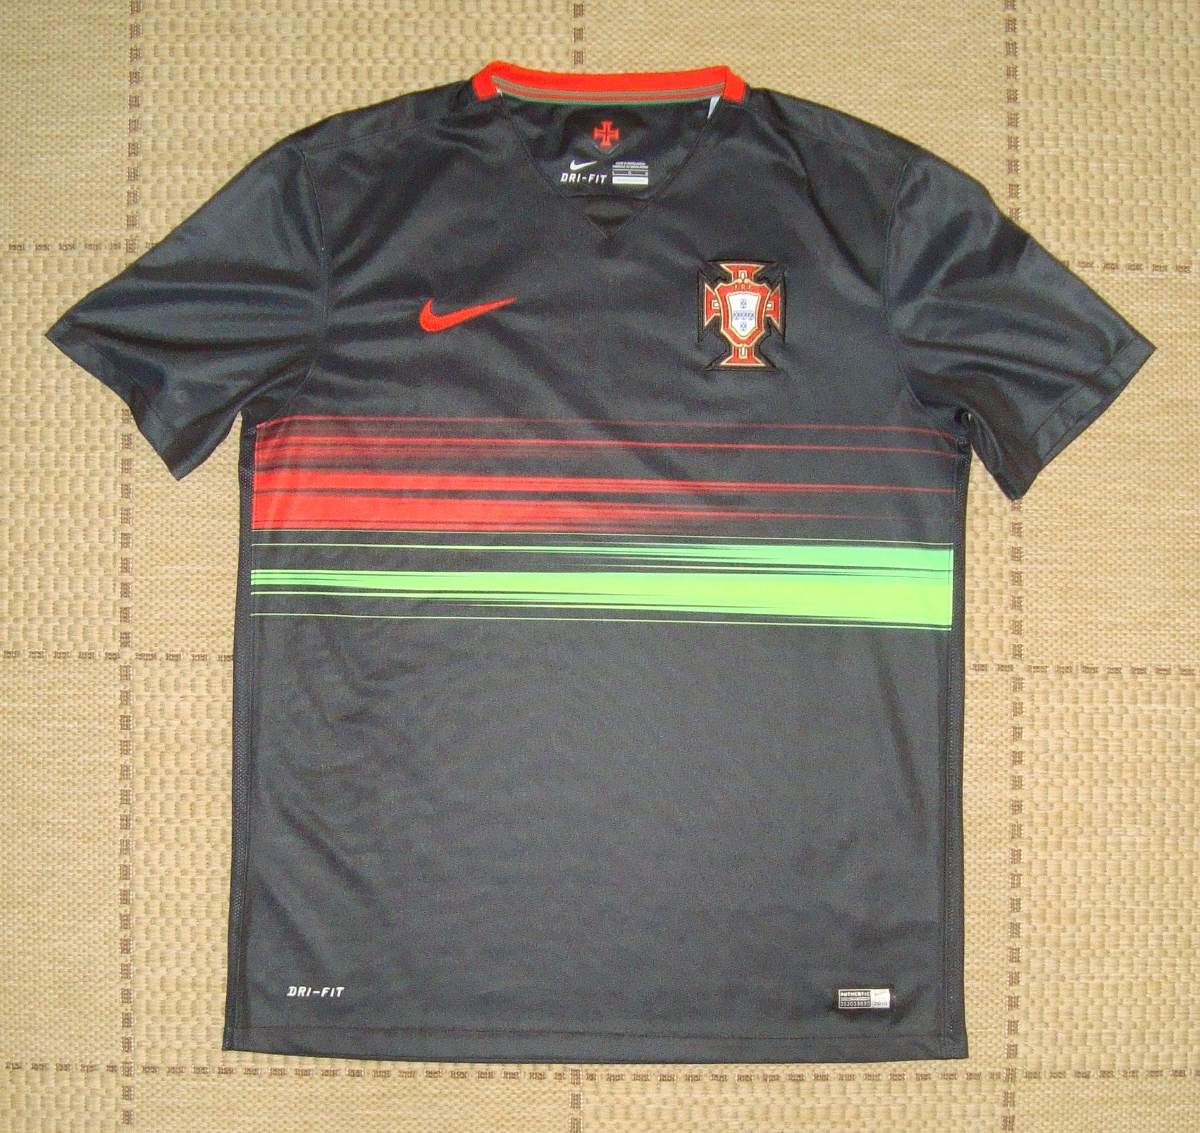 26a5b14522af6 camisa original portugal 2015 away. Carregando zoom.